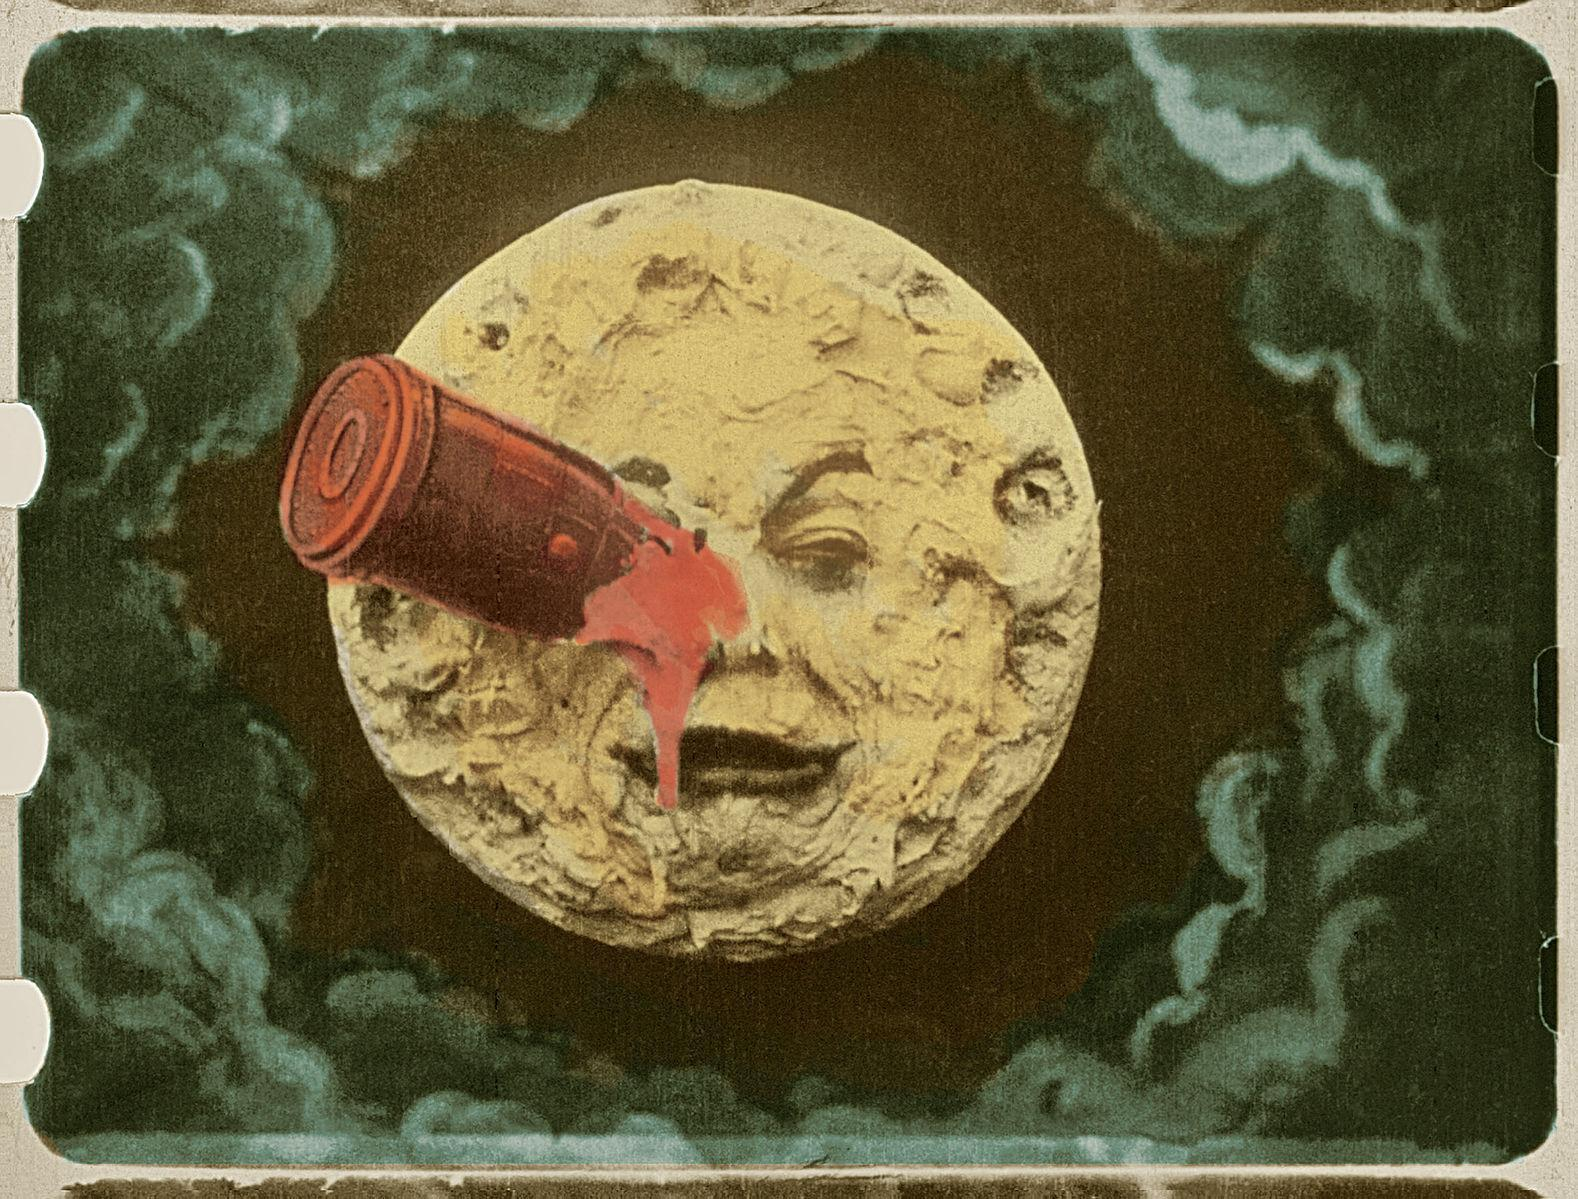 Image of a moon with a face & a red rocket in its eye